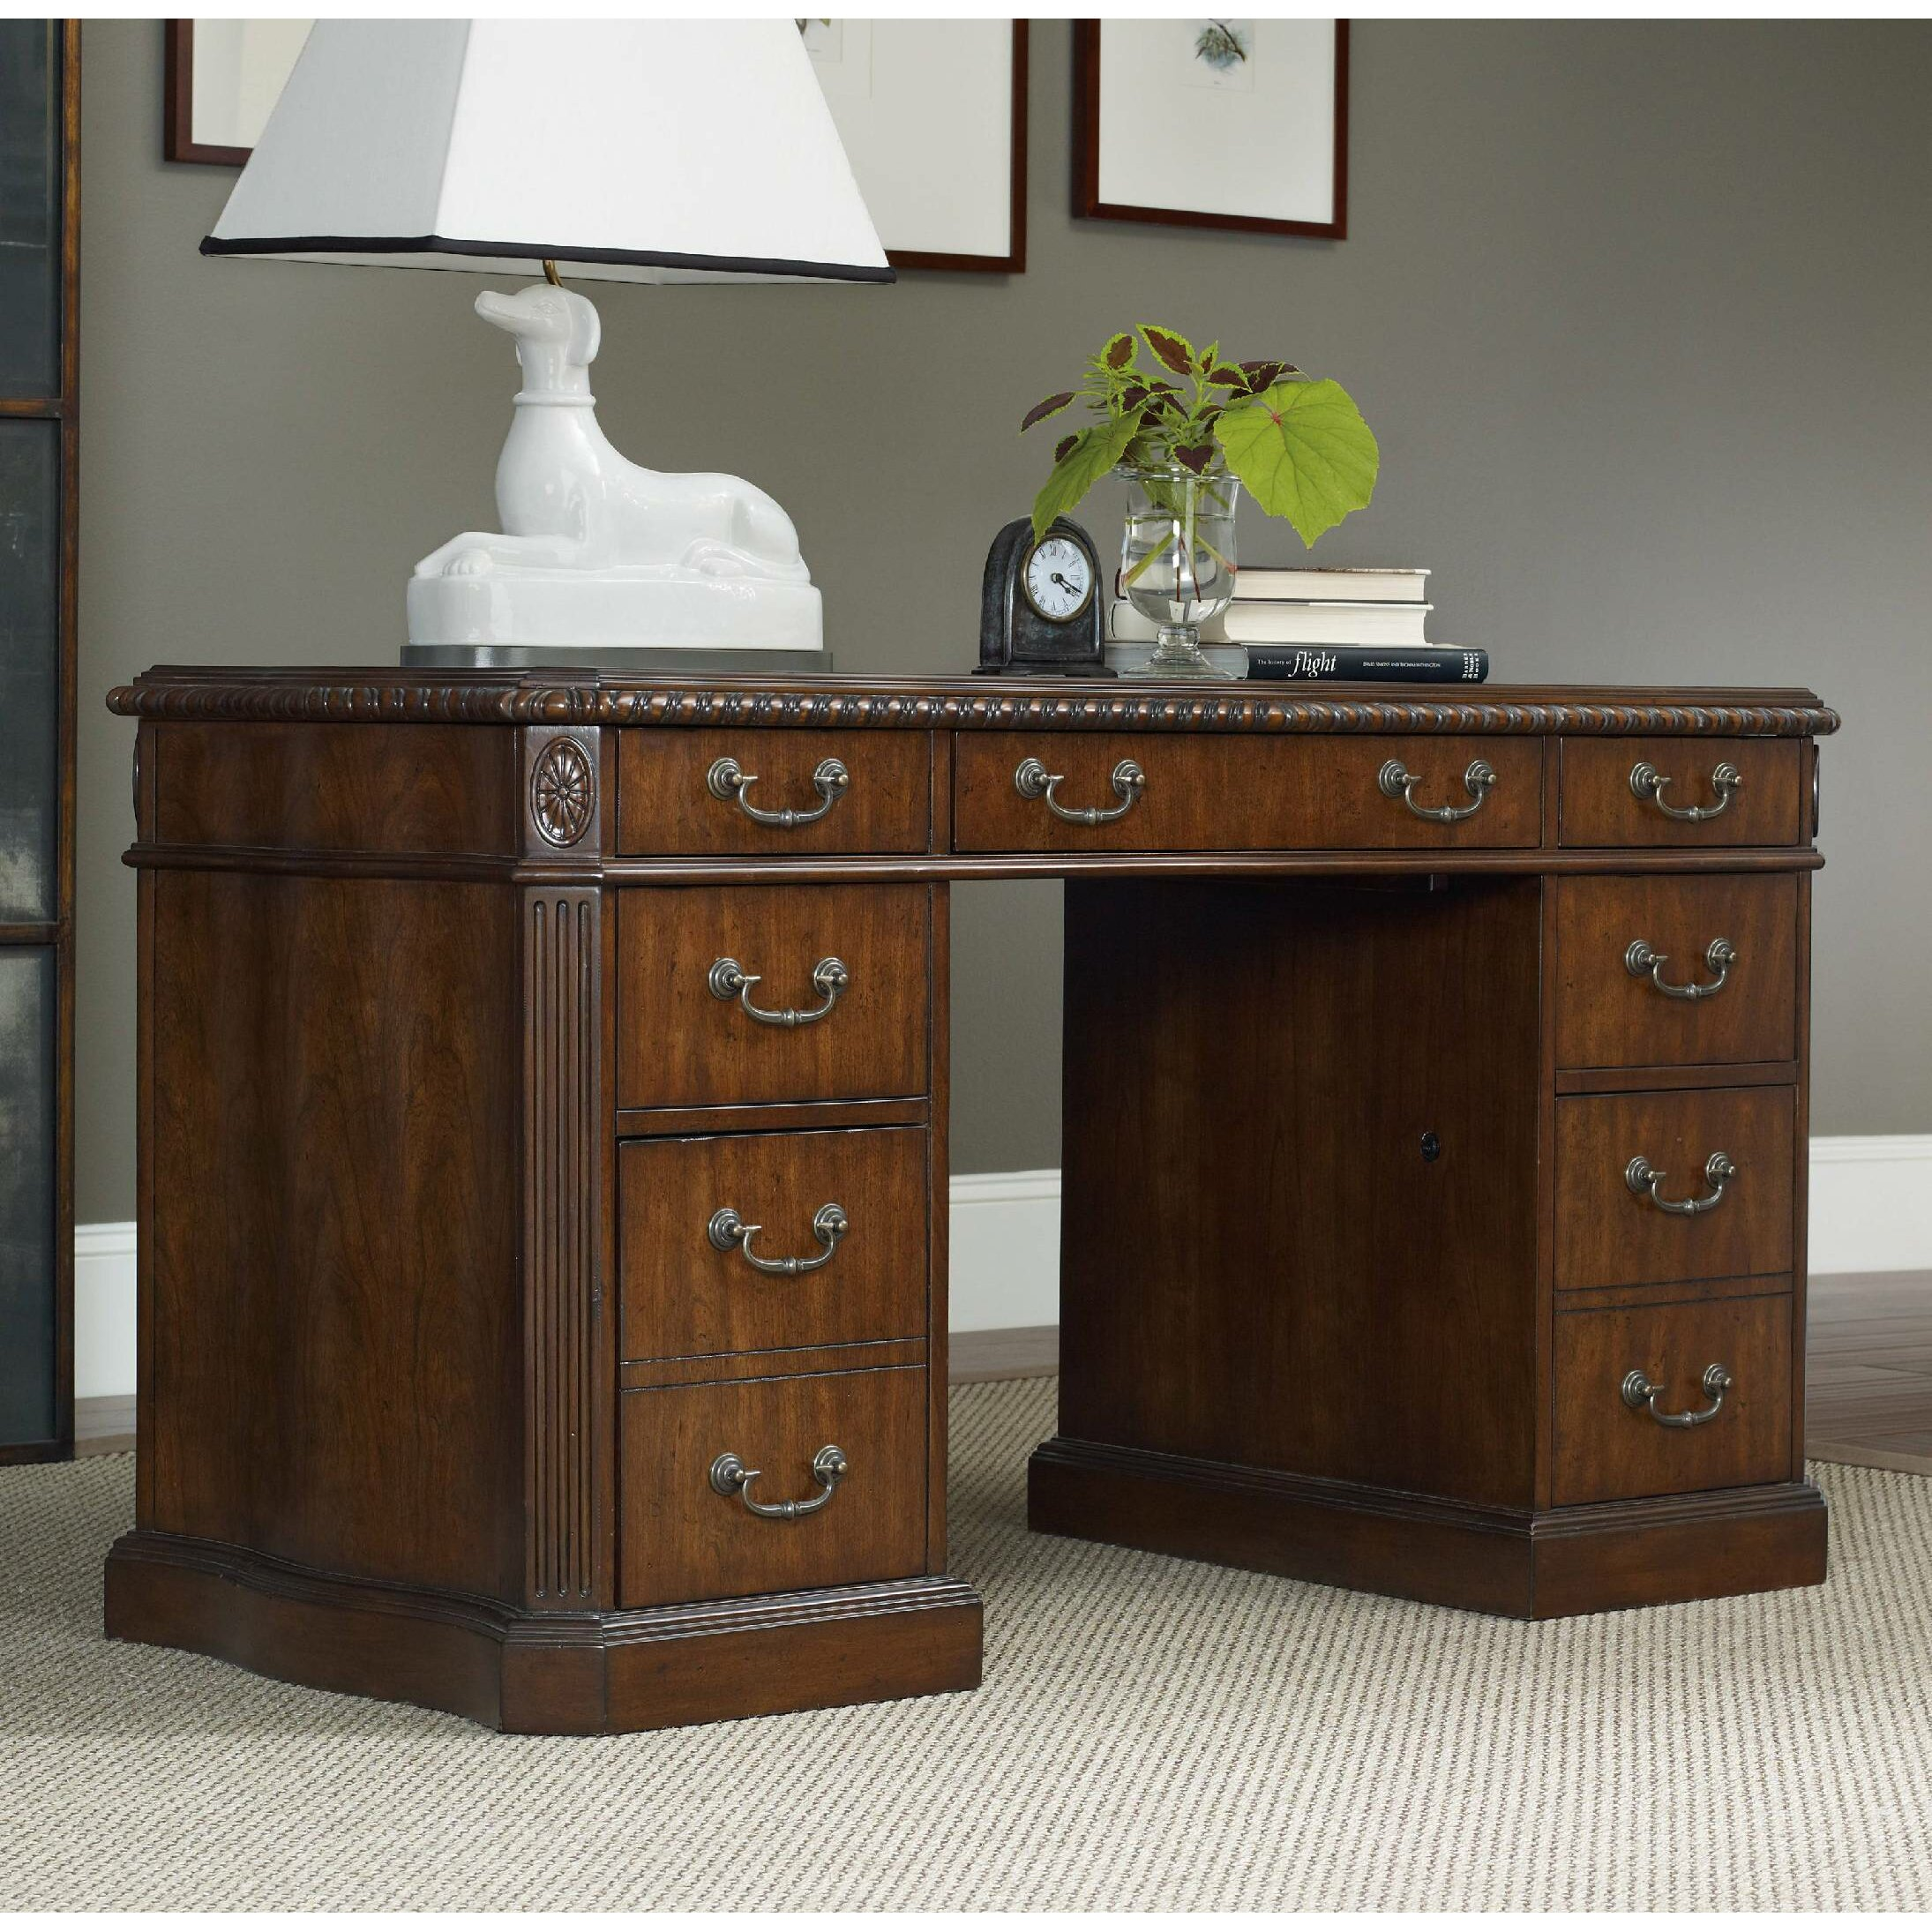 Hooker Furniture Executive Desk With Knee Hole Reviews